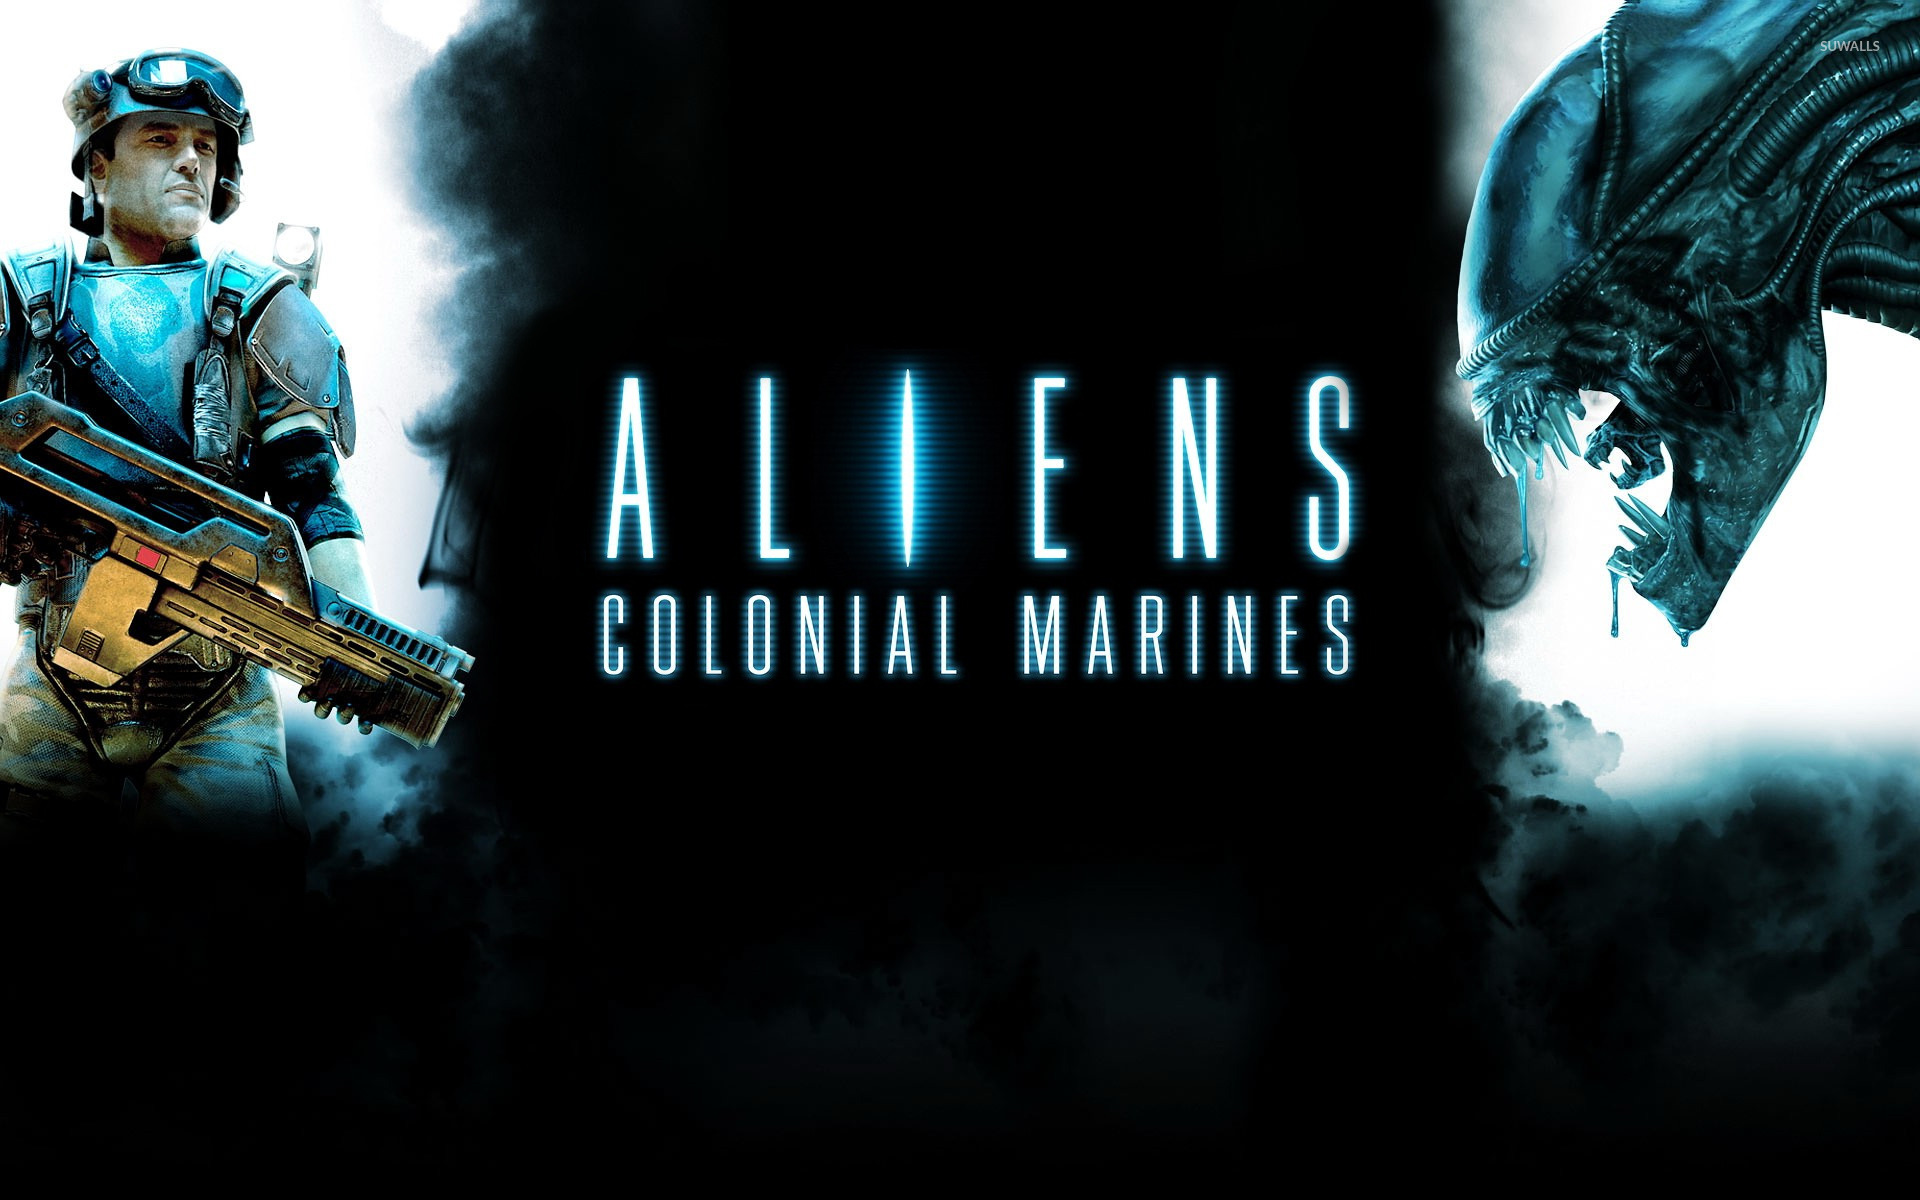 aliens colonial marines 5 wallpaper game wallpapers